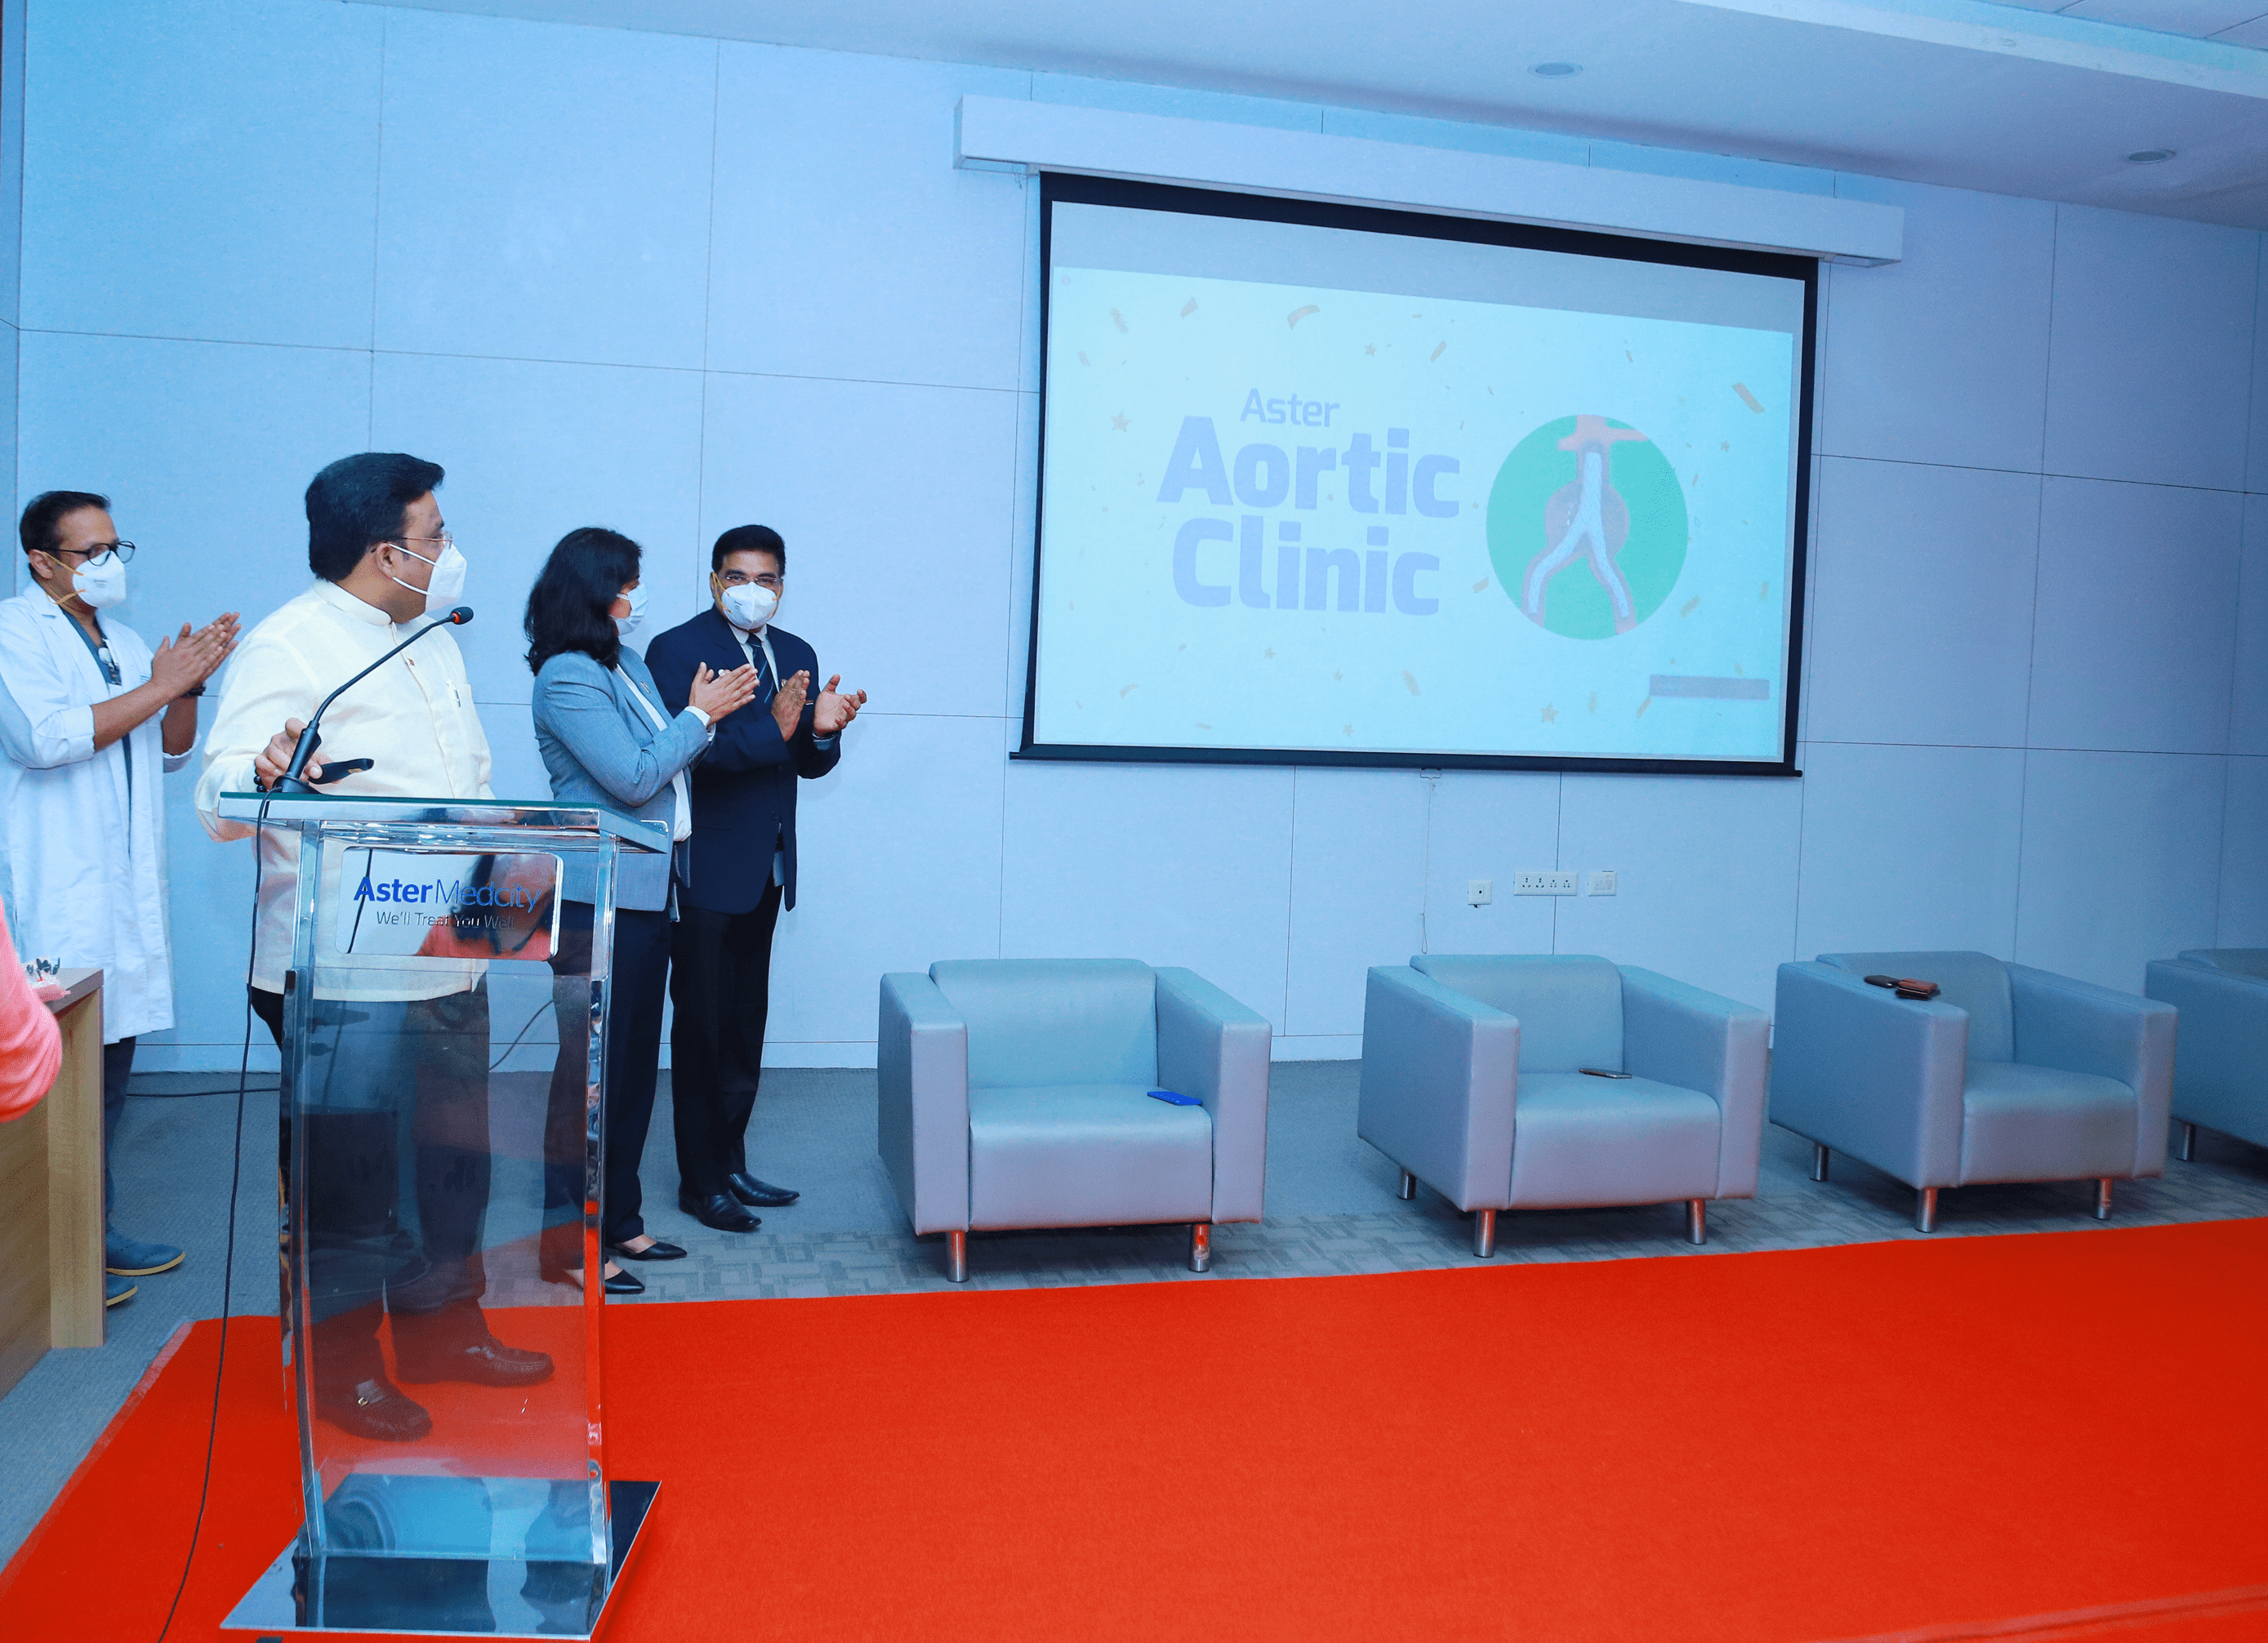 Aster Medcity launches Aortic clinic 2 min